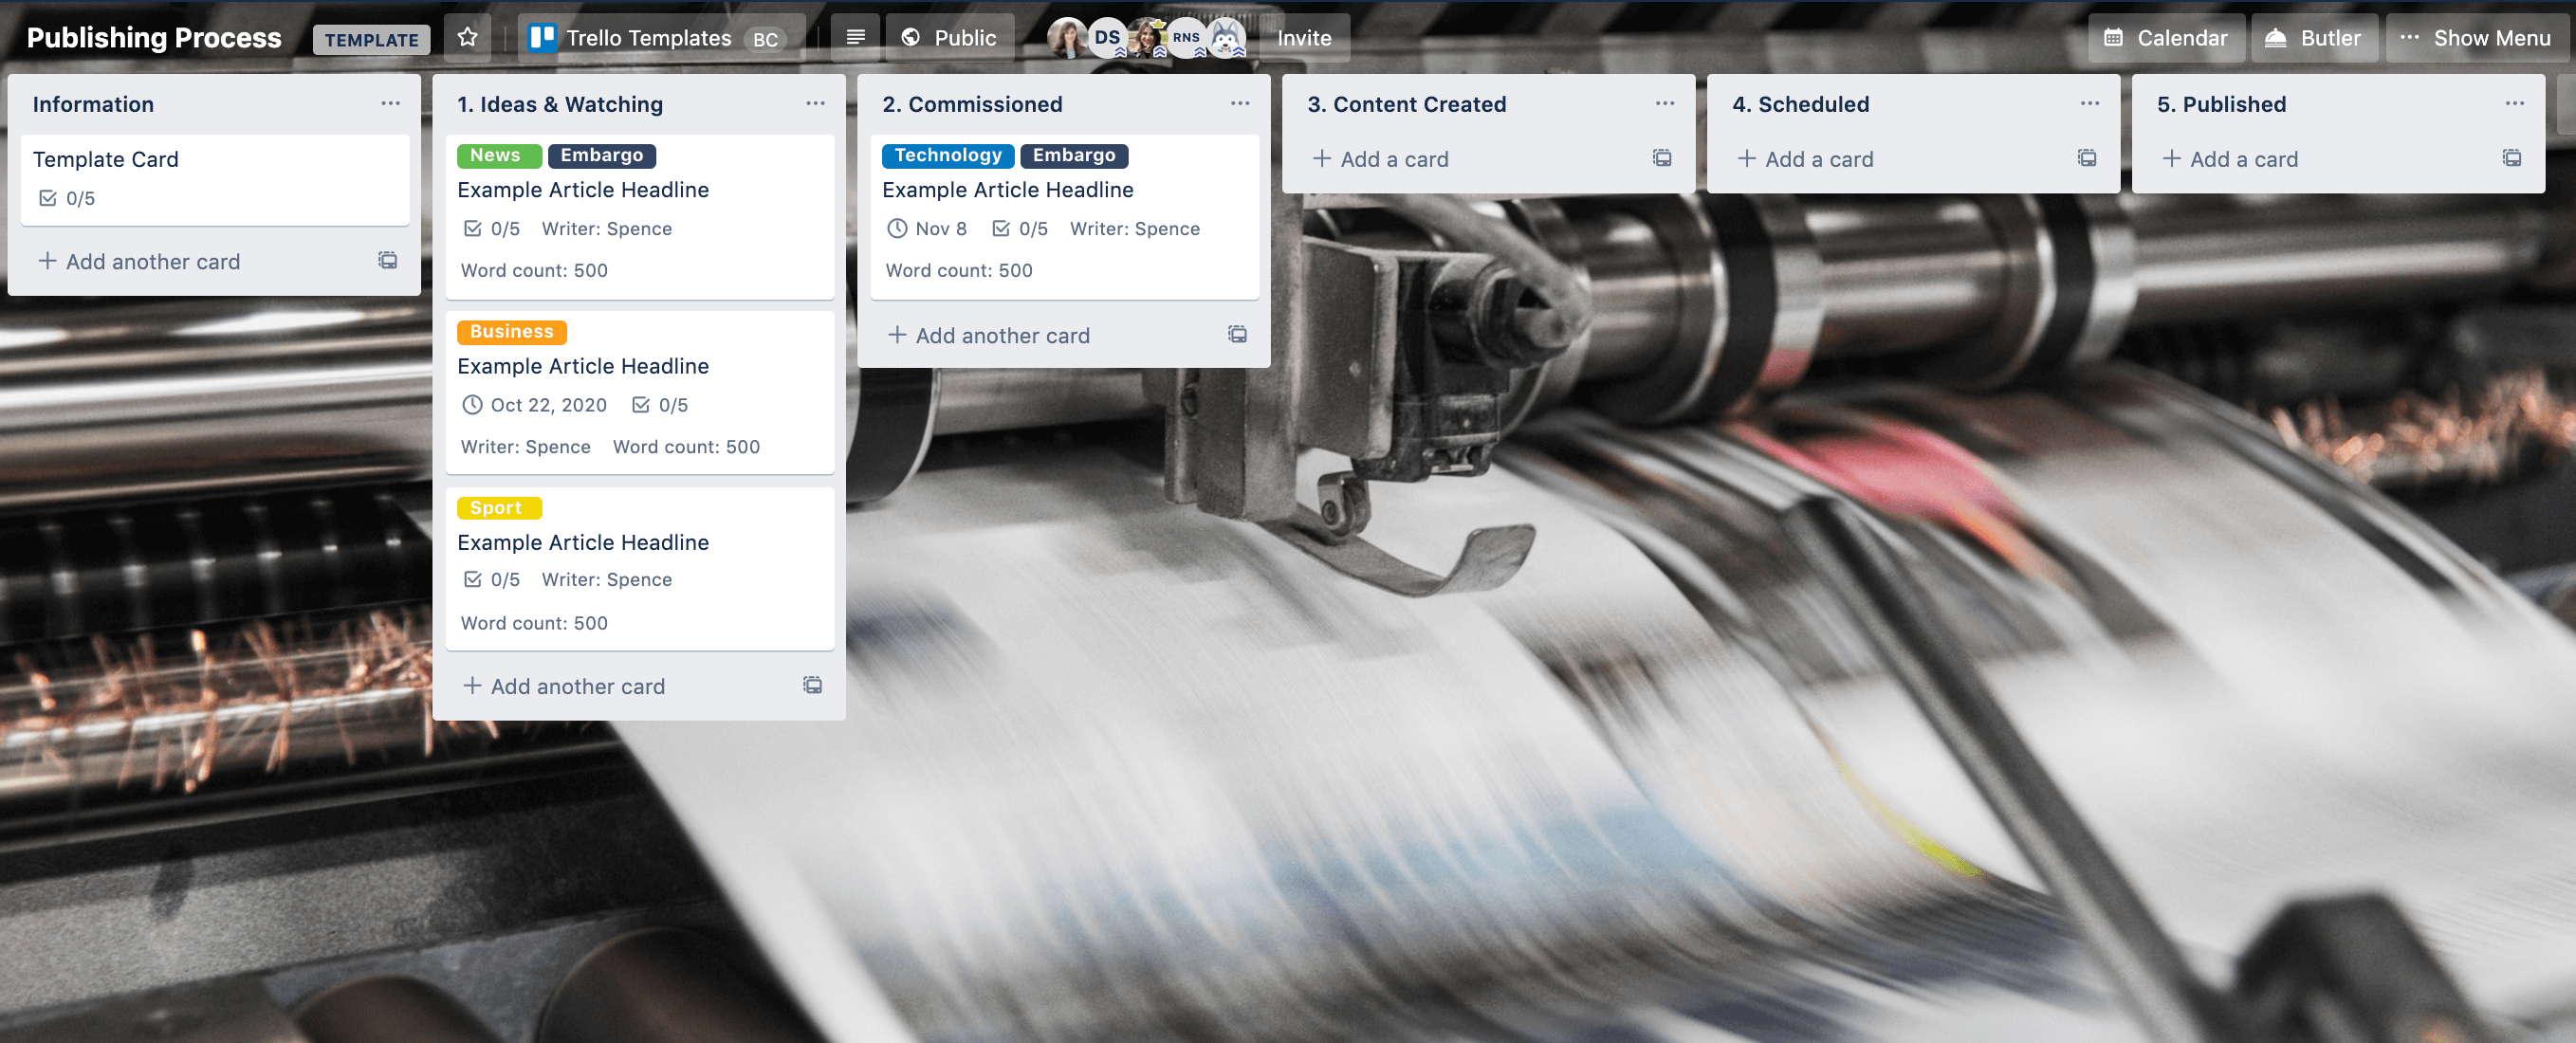 Publishing Process Template Trello board